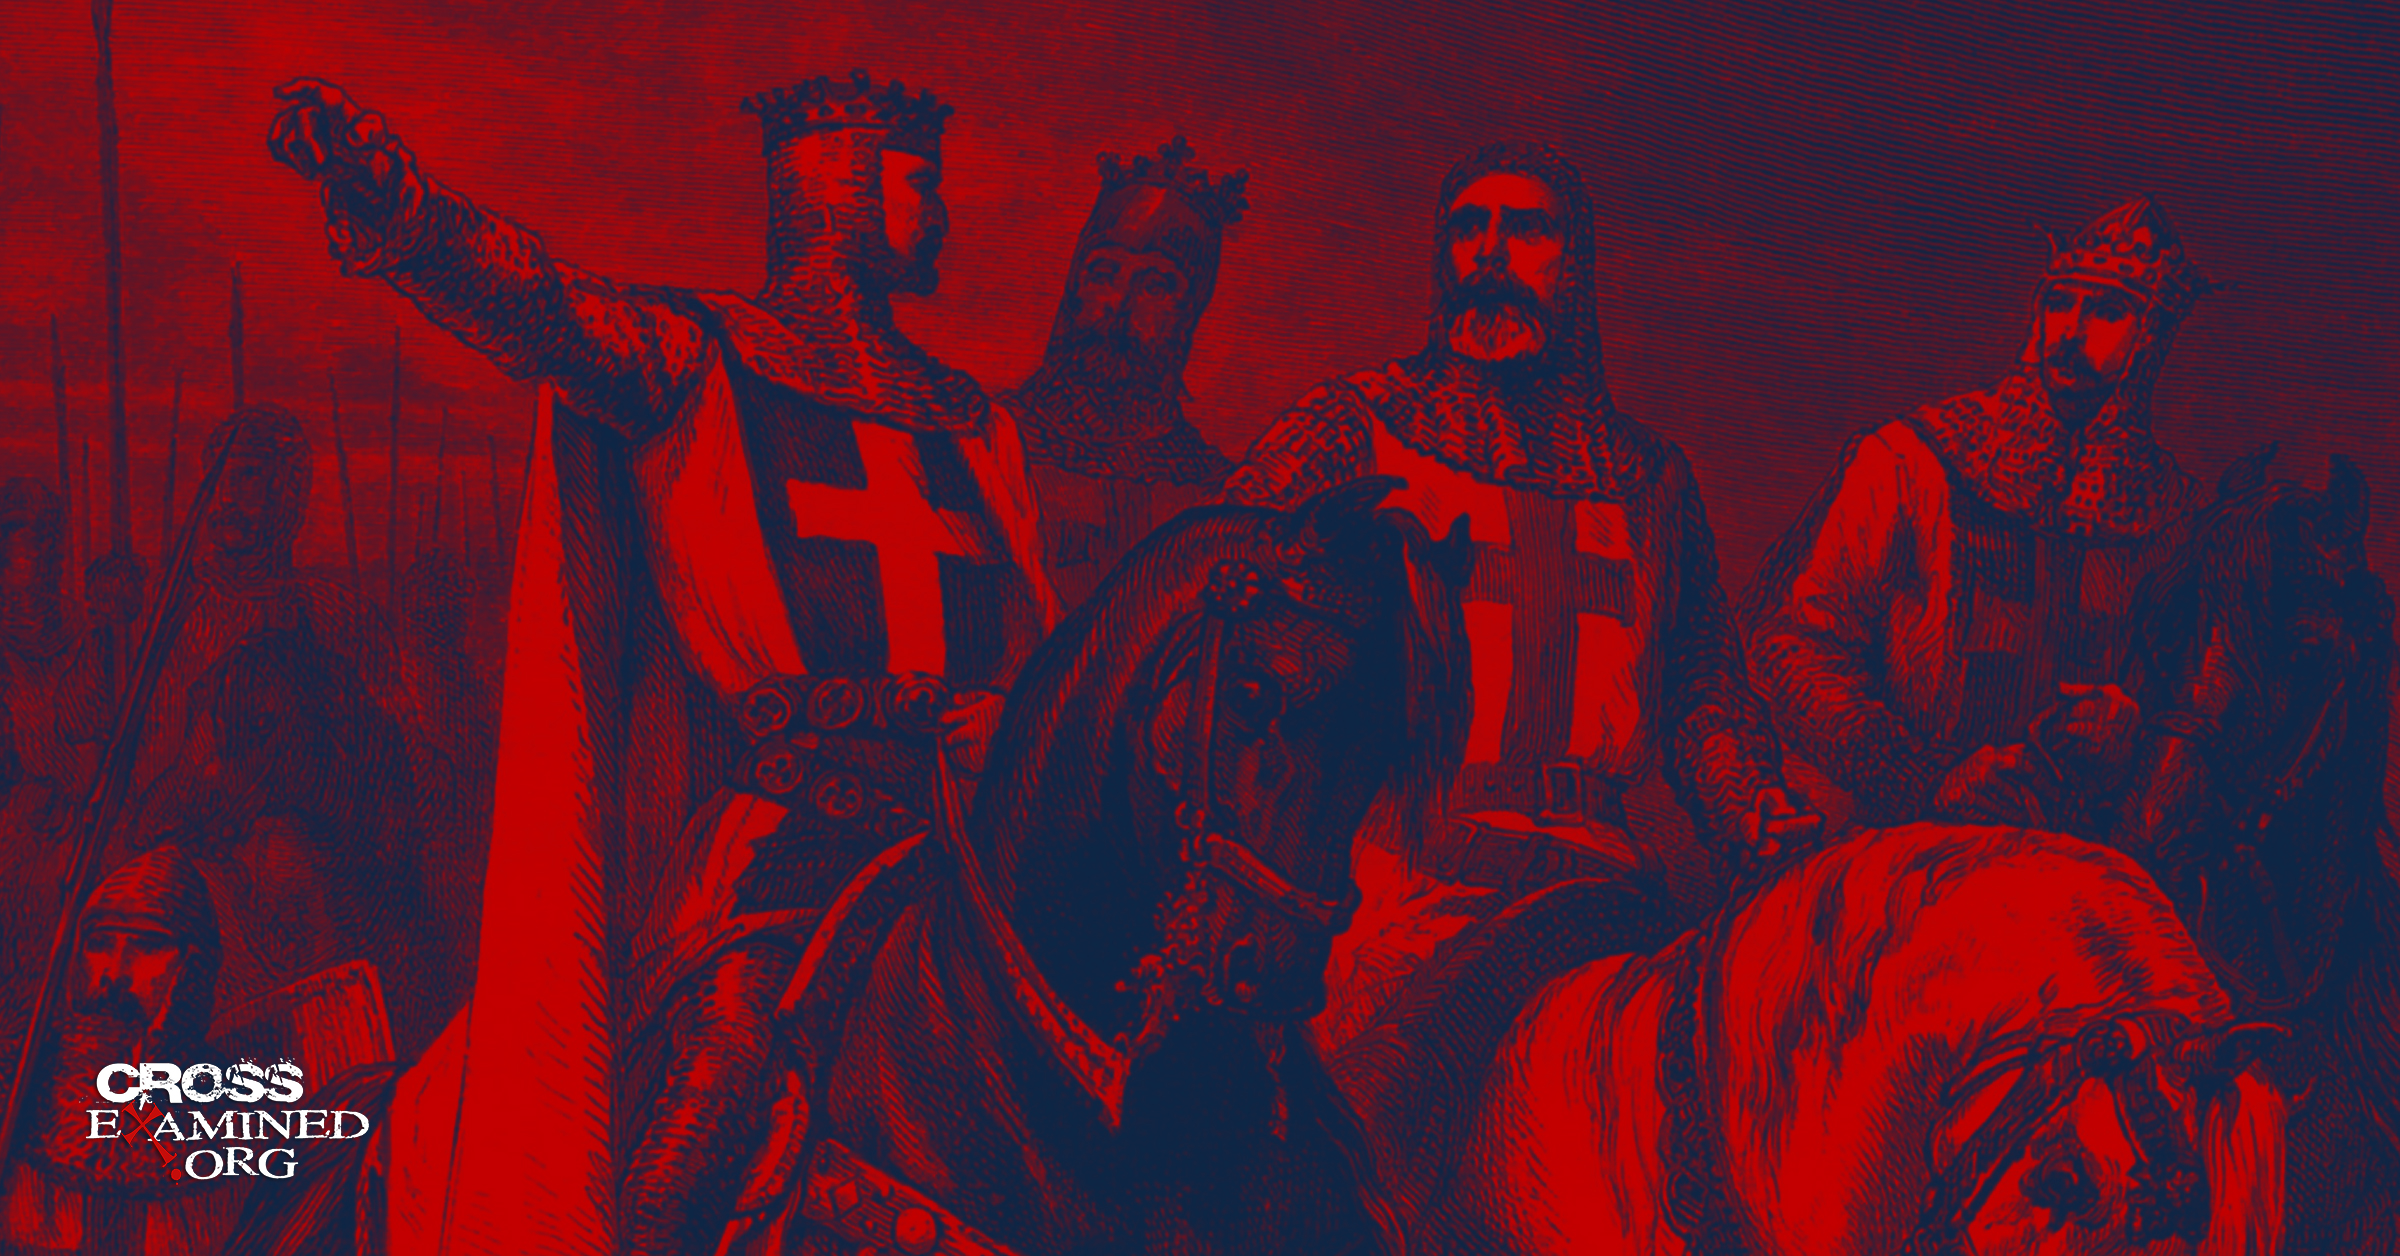 Correcting four myths about the history of the Crusades